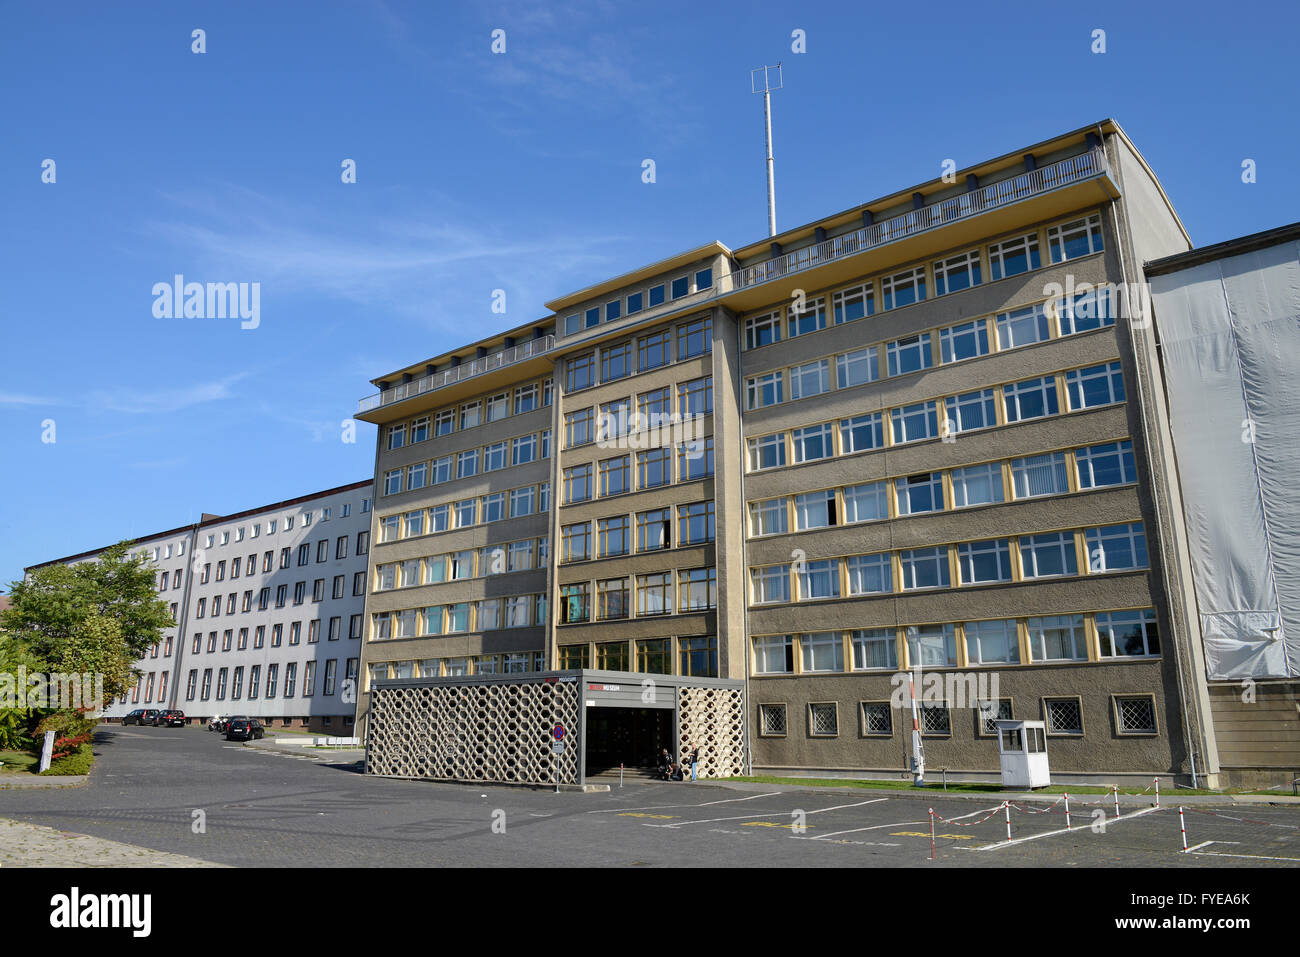 haus 1 stasi museum normannenstrasse lichtenberg berlin stock photo royalty free image. Black Bedroom Furniture Sets. Home Design Ideas